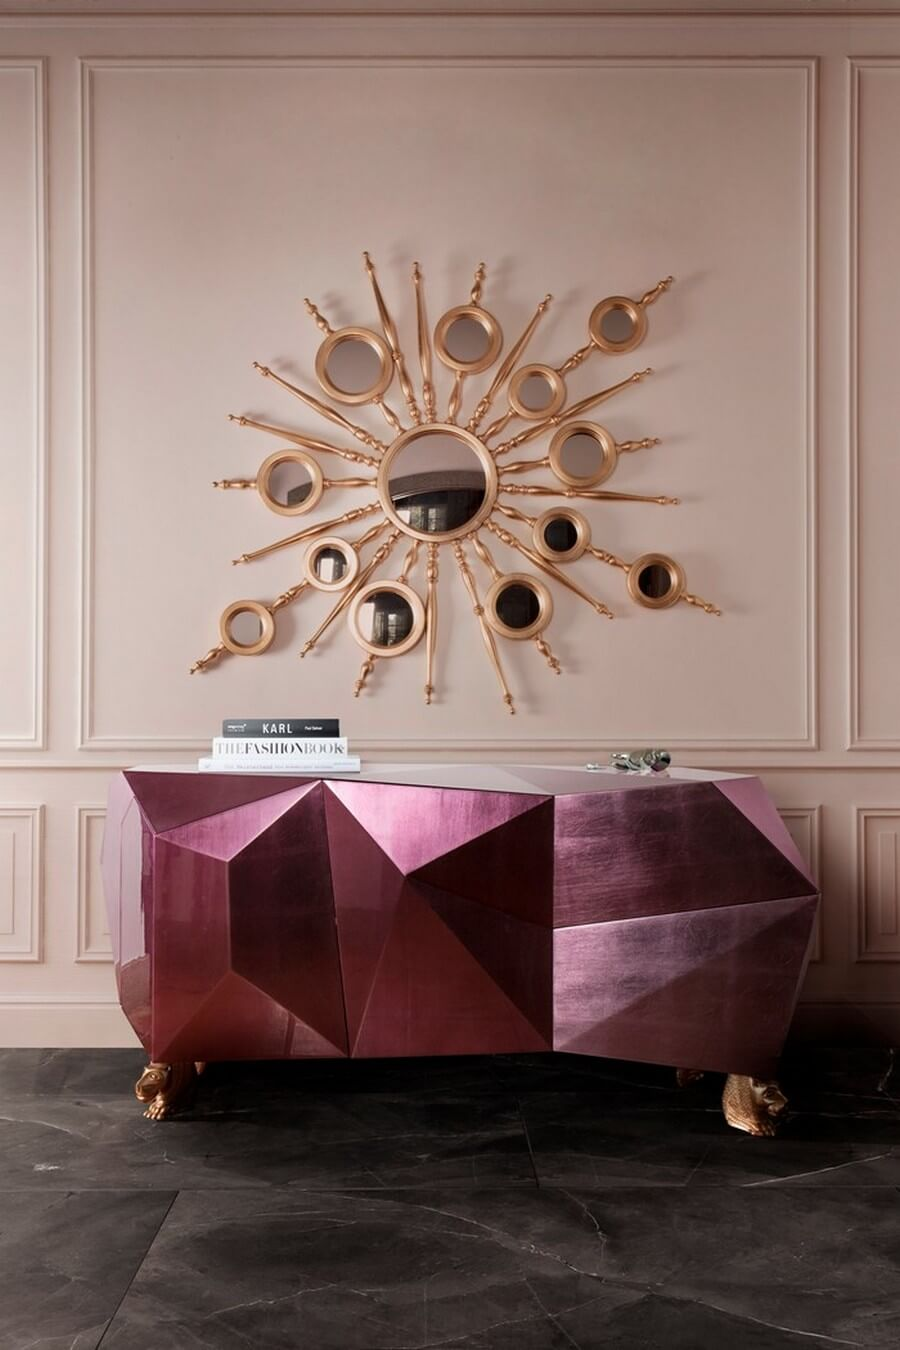 12 trend interior design ideas to give a up on your hall and entreway luxurious hall 12 TREND INTERIOR DESIGN IDEAS TO A LUXURIOUS HALL A1 BL